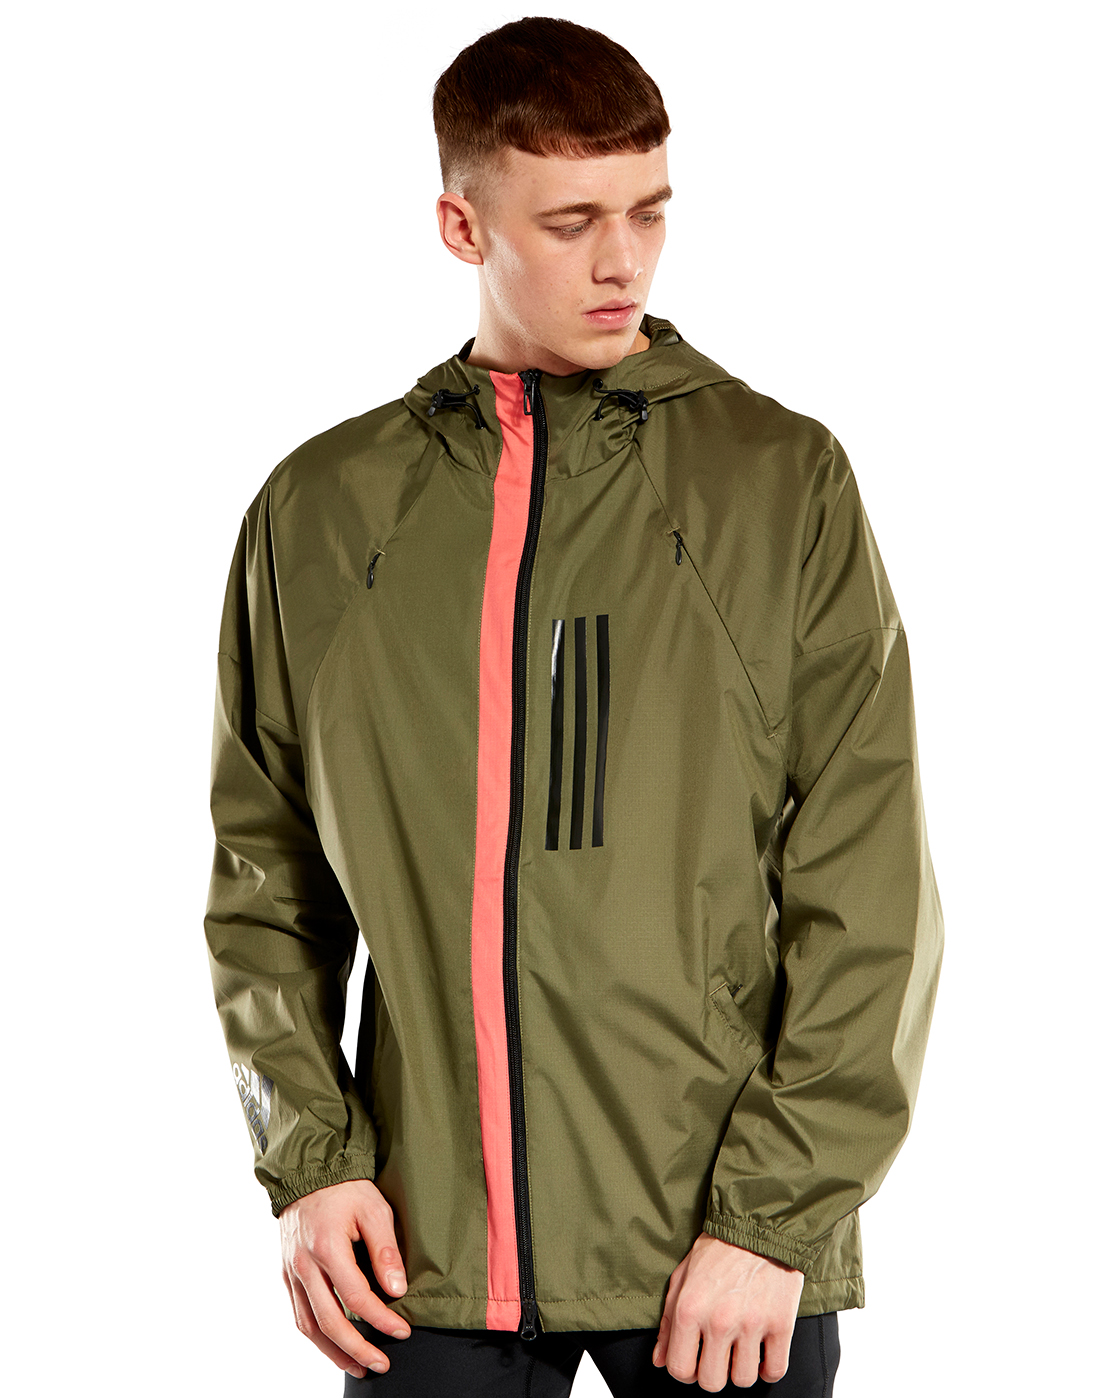 2dfe31d79 Mens Wind Jacket